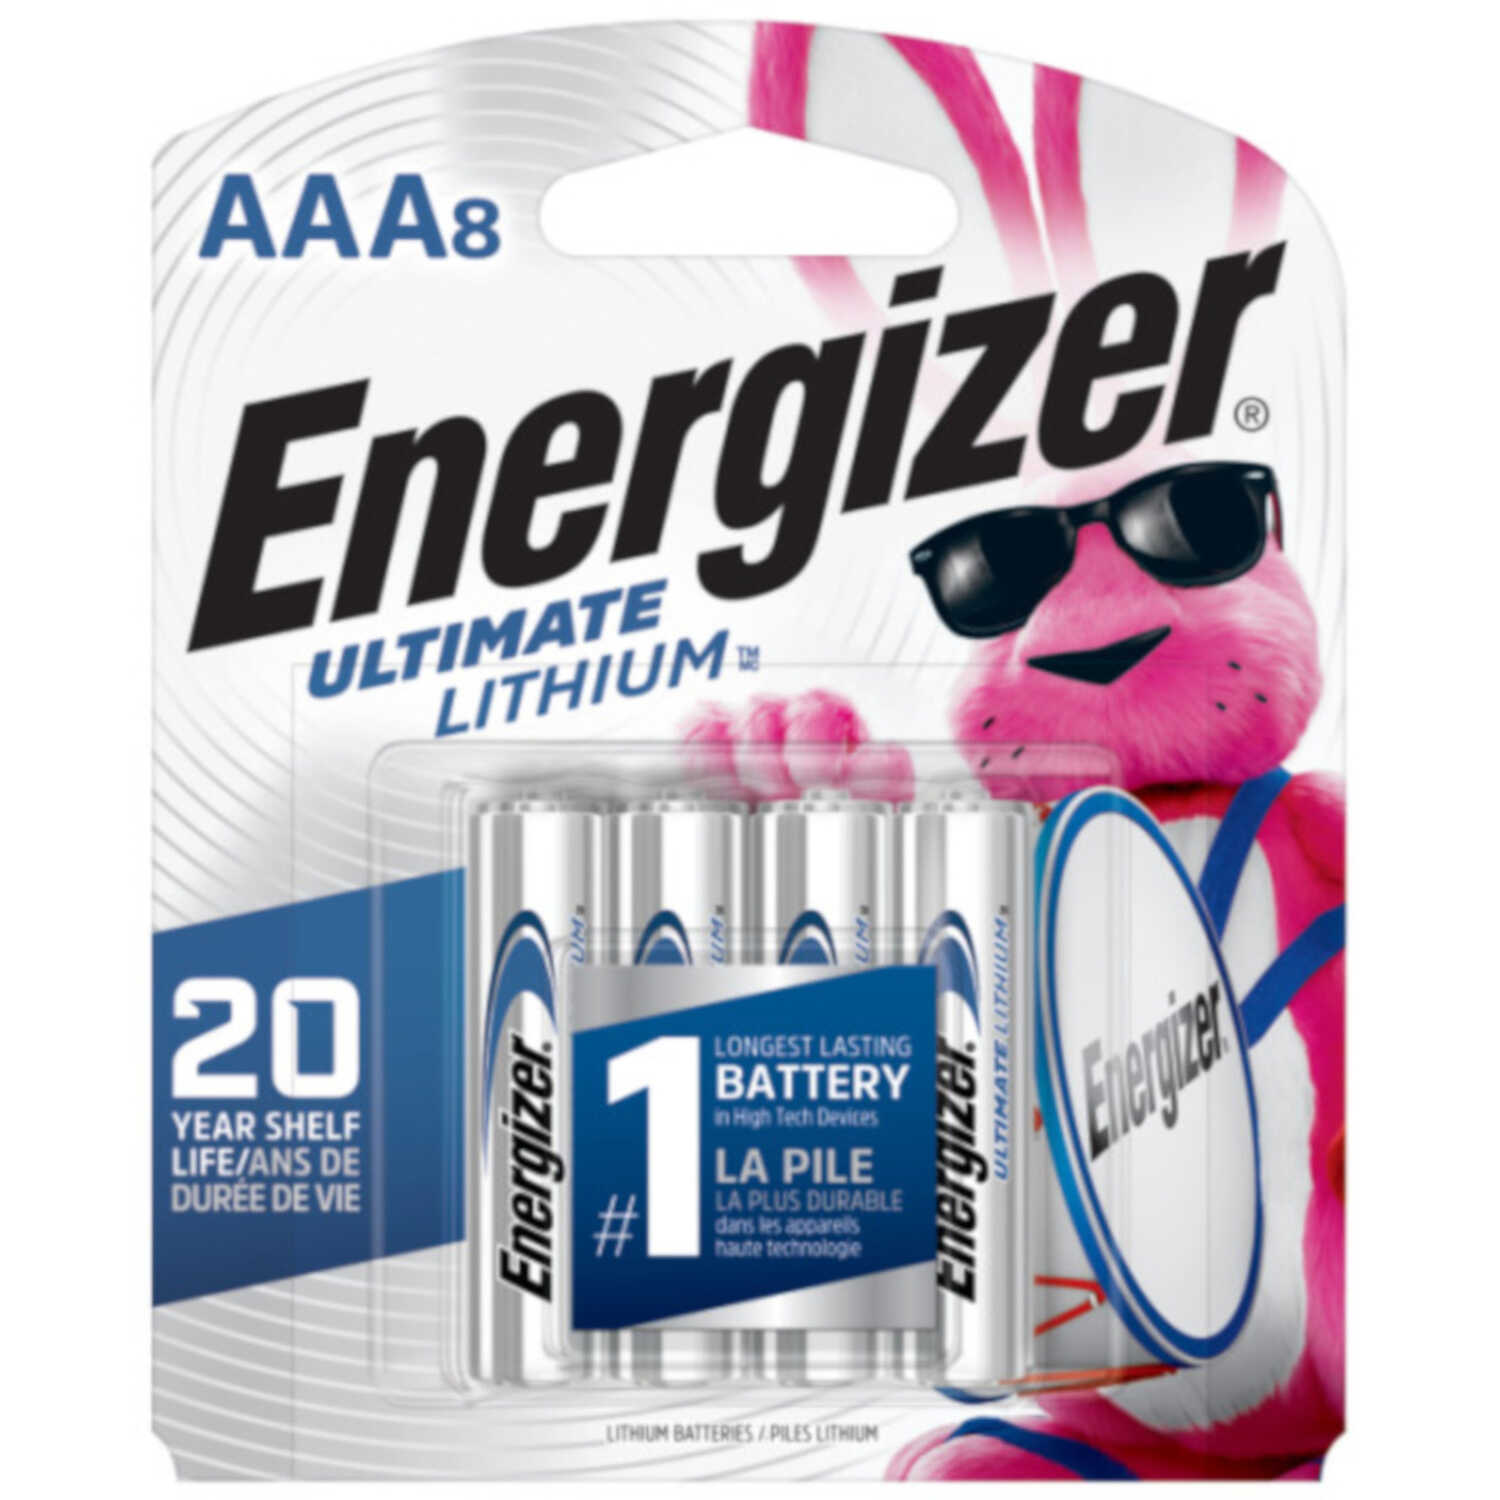 Energizer  Lithium  AAA  Batteries  8 pk